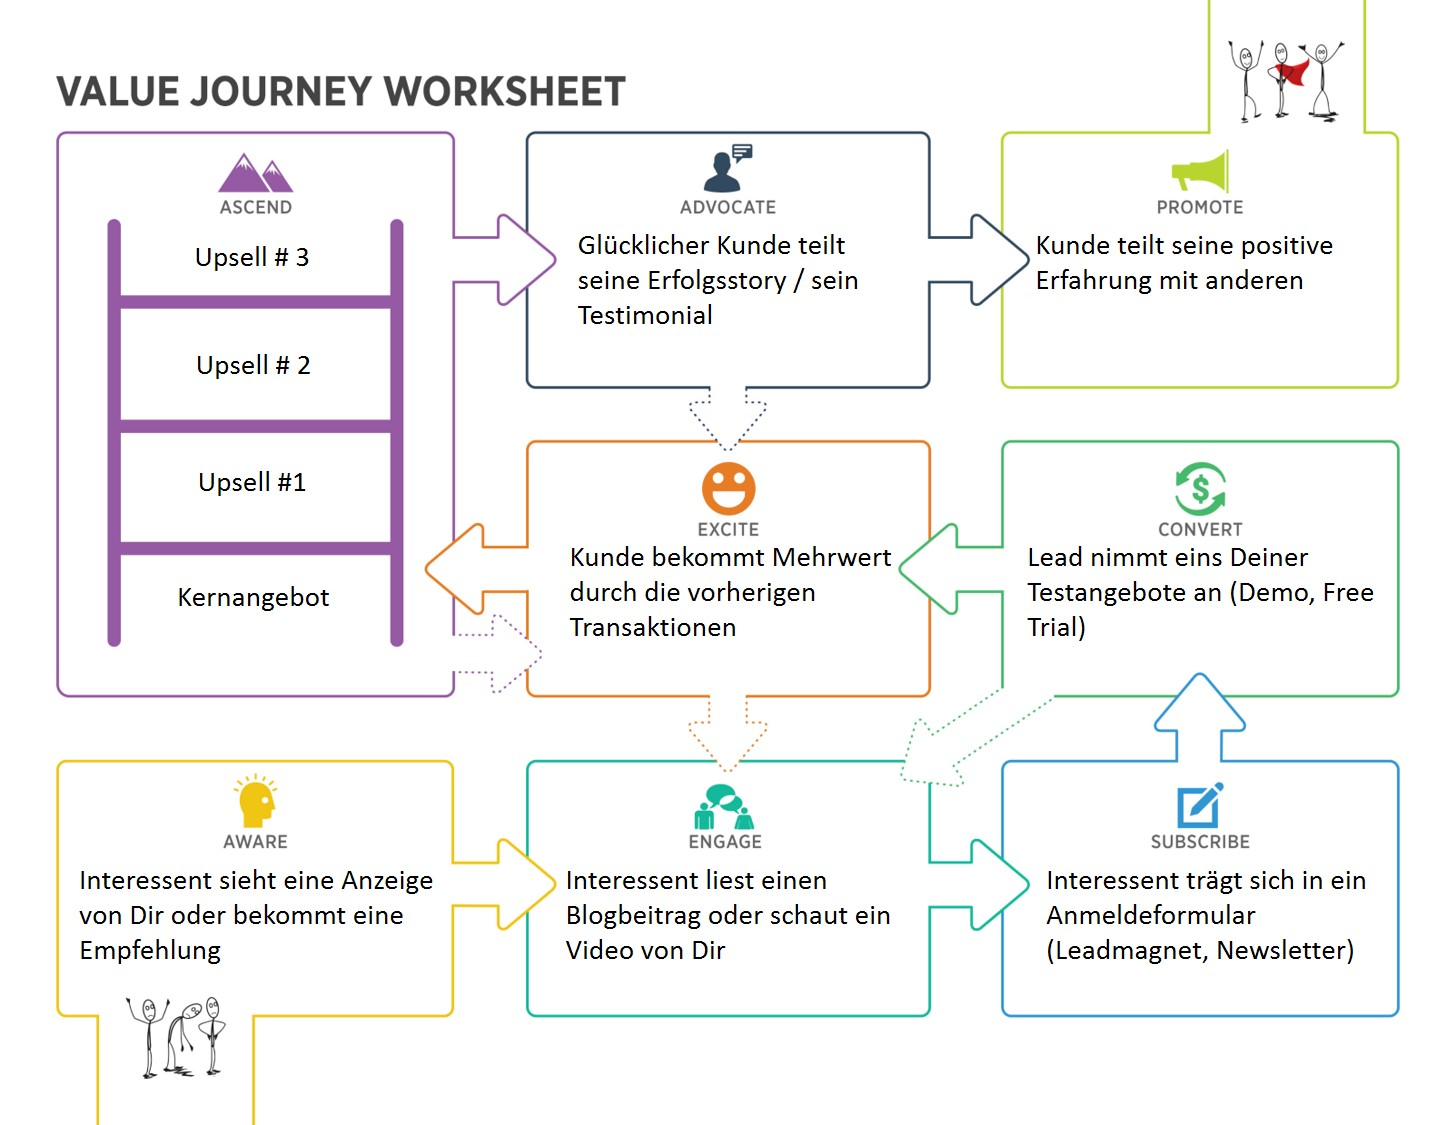 Customer Value Journey - Example